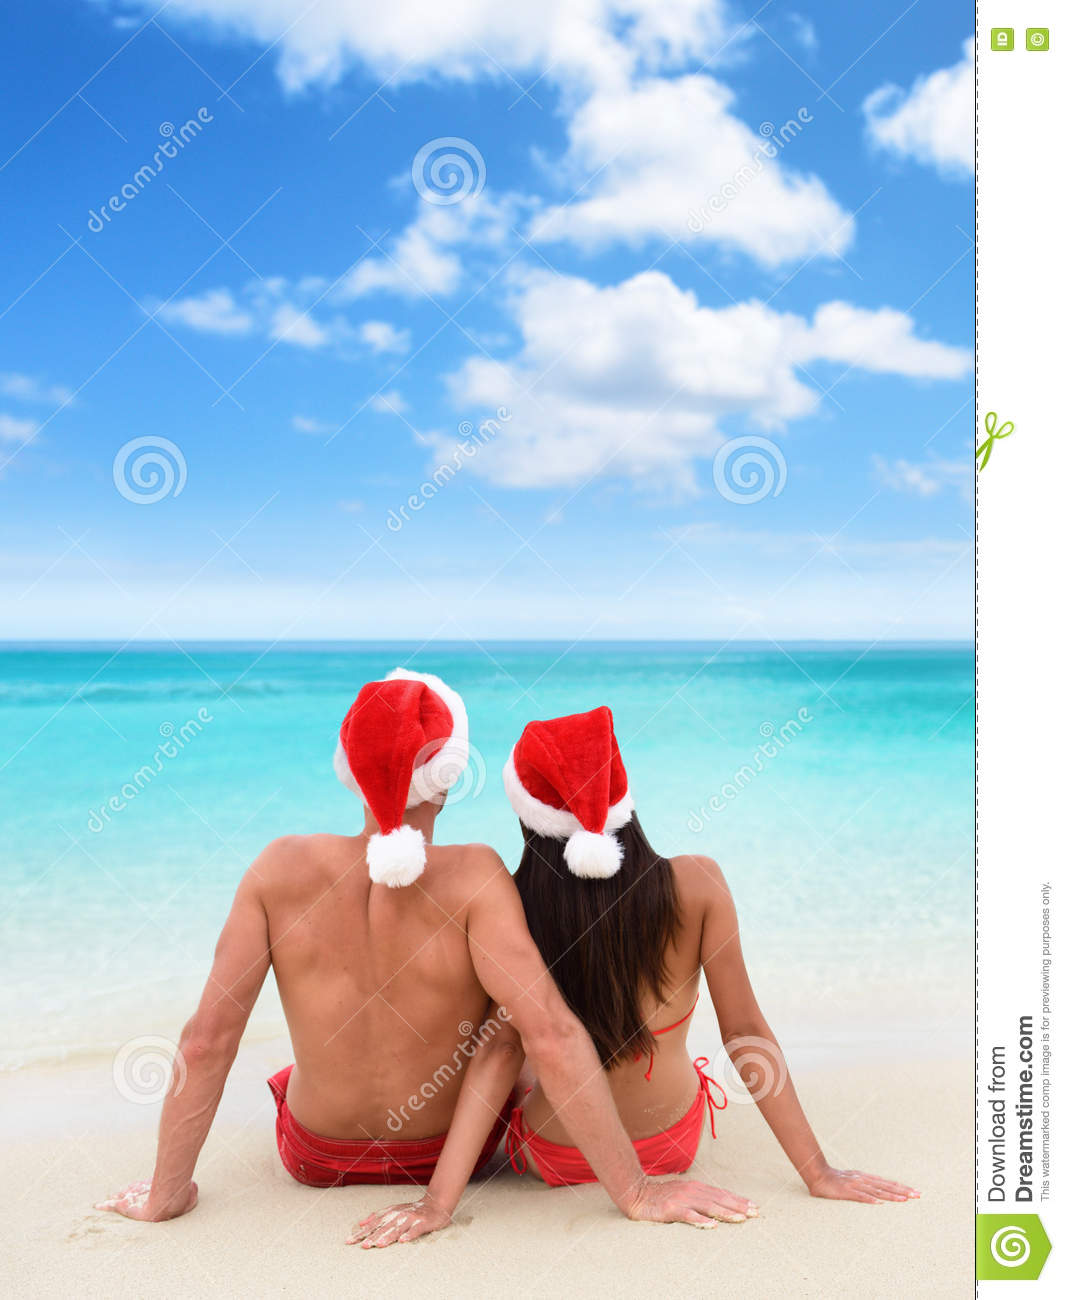 Christmas beach vacation holidays couple relaxing